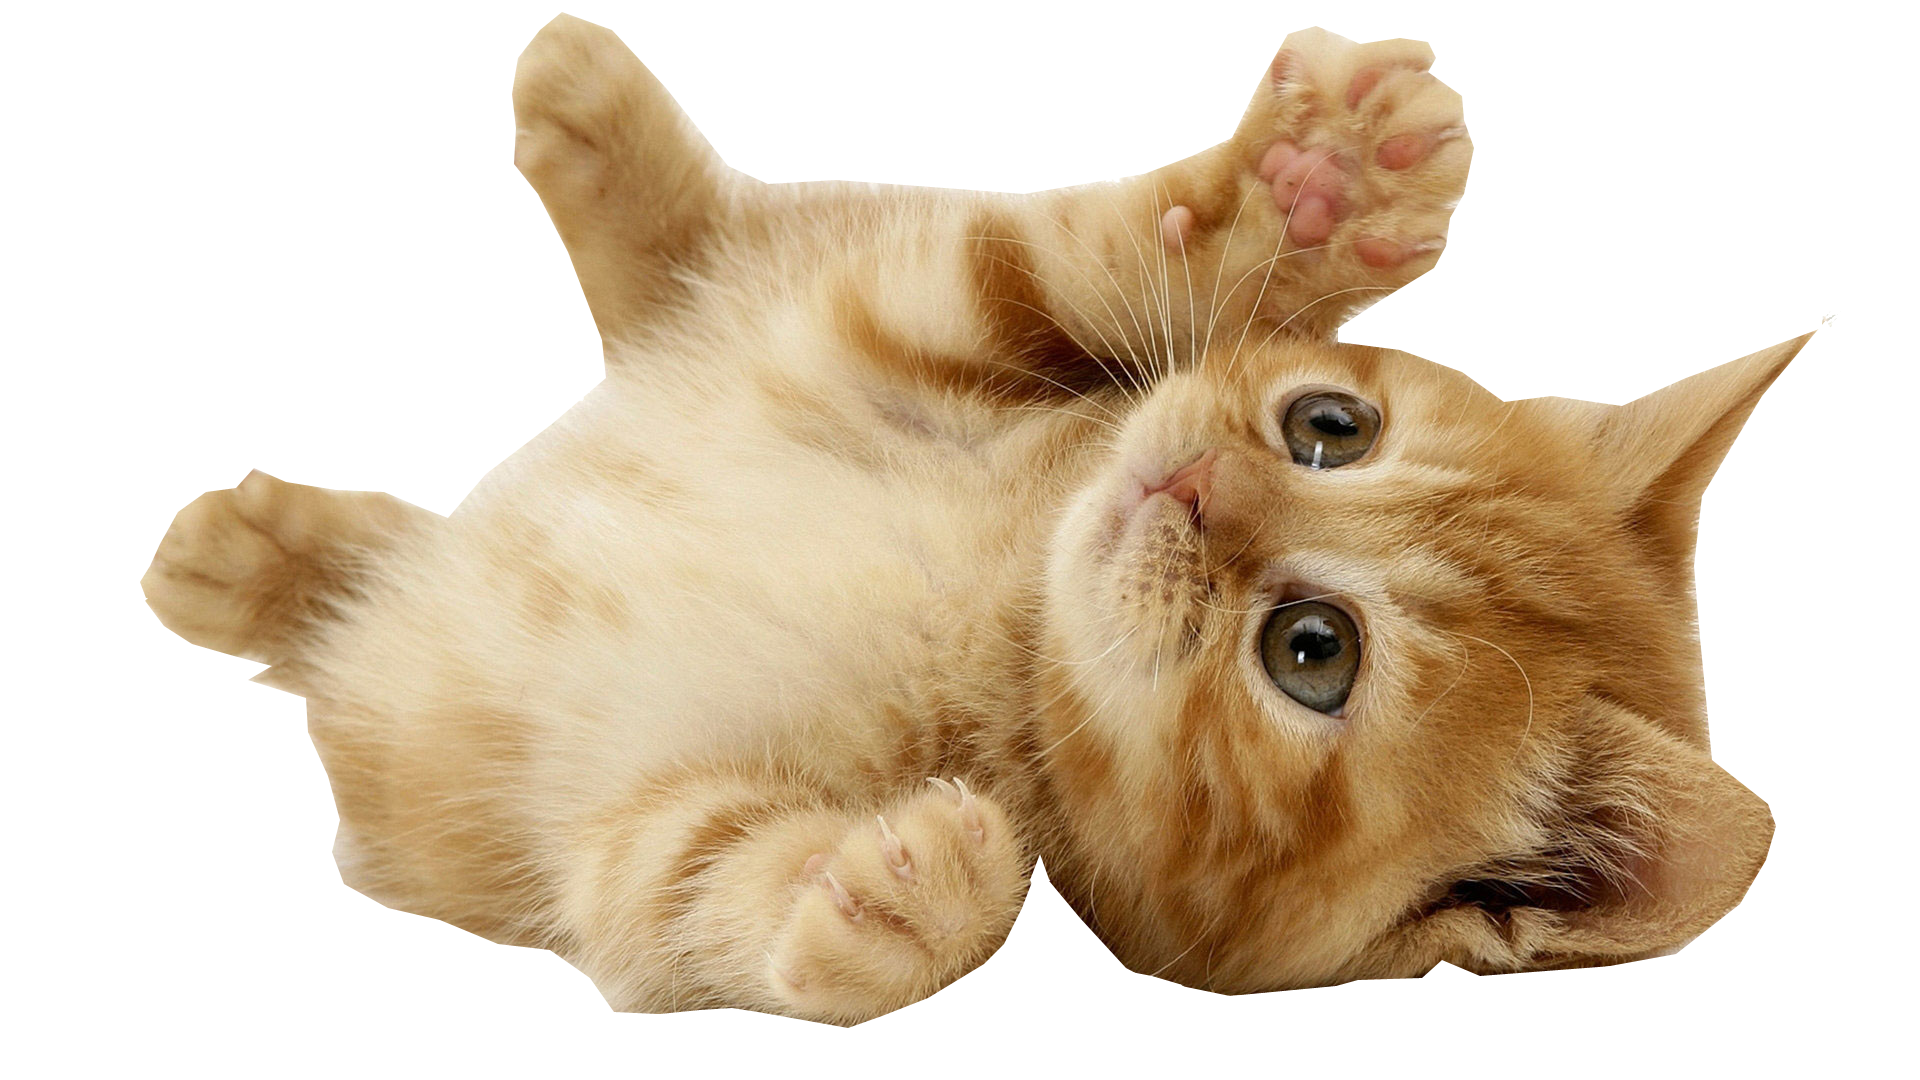 . PlusPng.com Kitten Playing transparent background - Kitten PNG